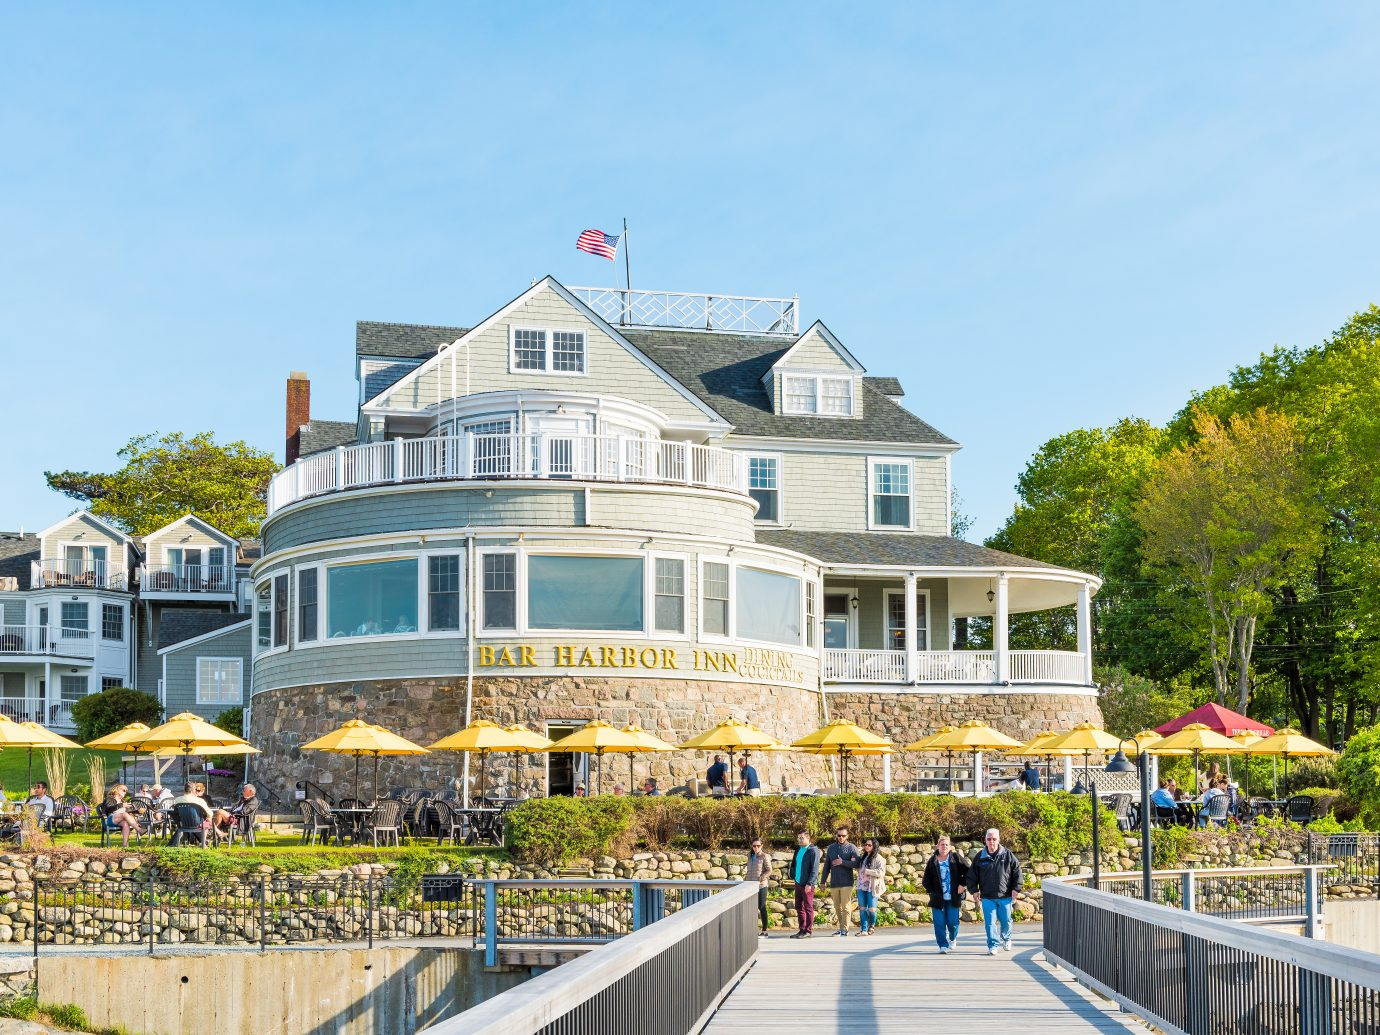 Bar Harbor: Oceanfront resort inn with waterfront restaurant in downtown village in summer